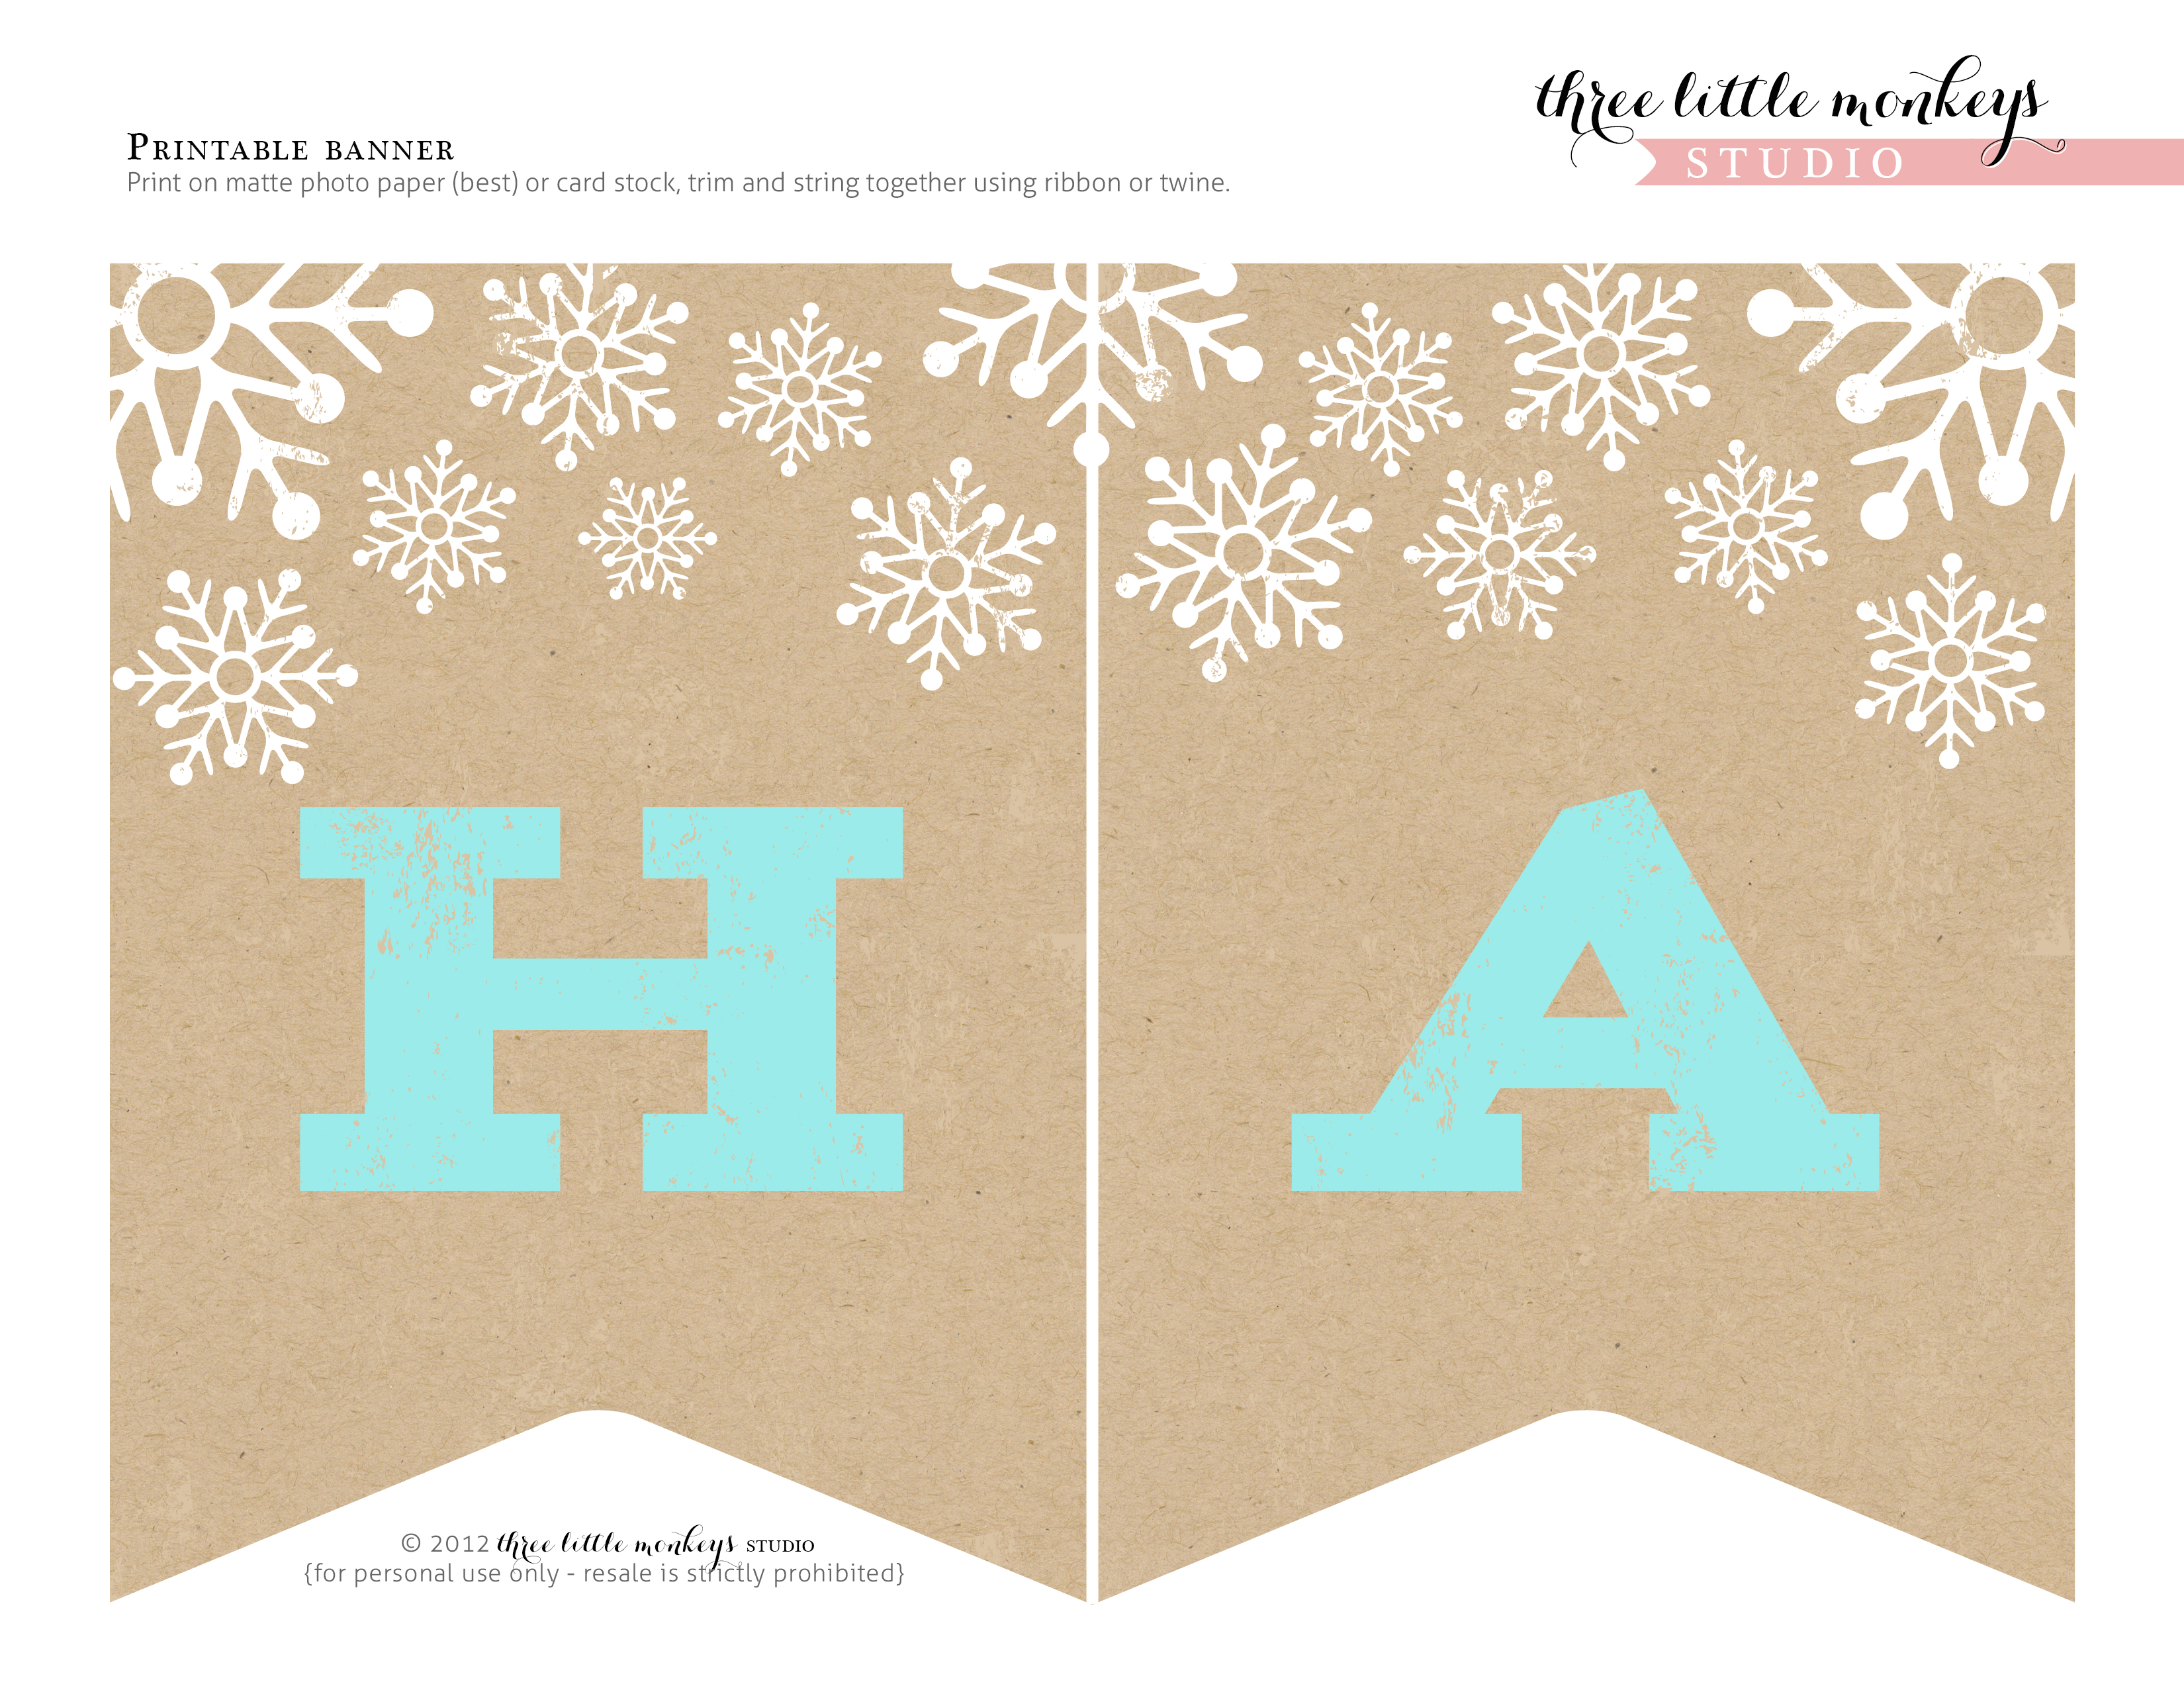 6 best images of free winter banner printable winter